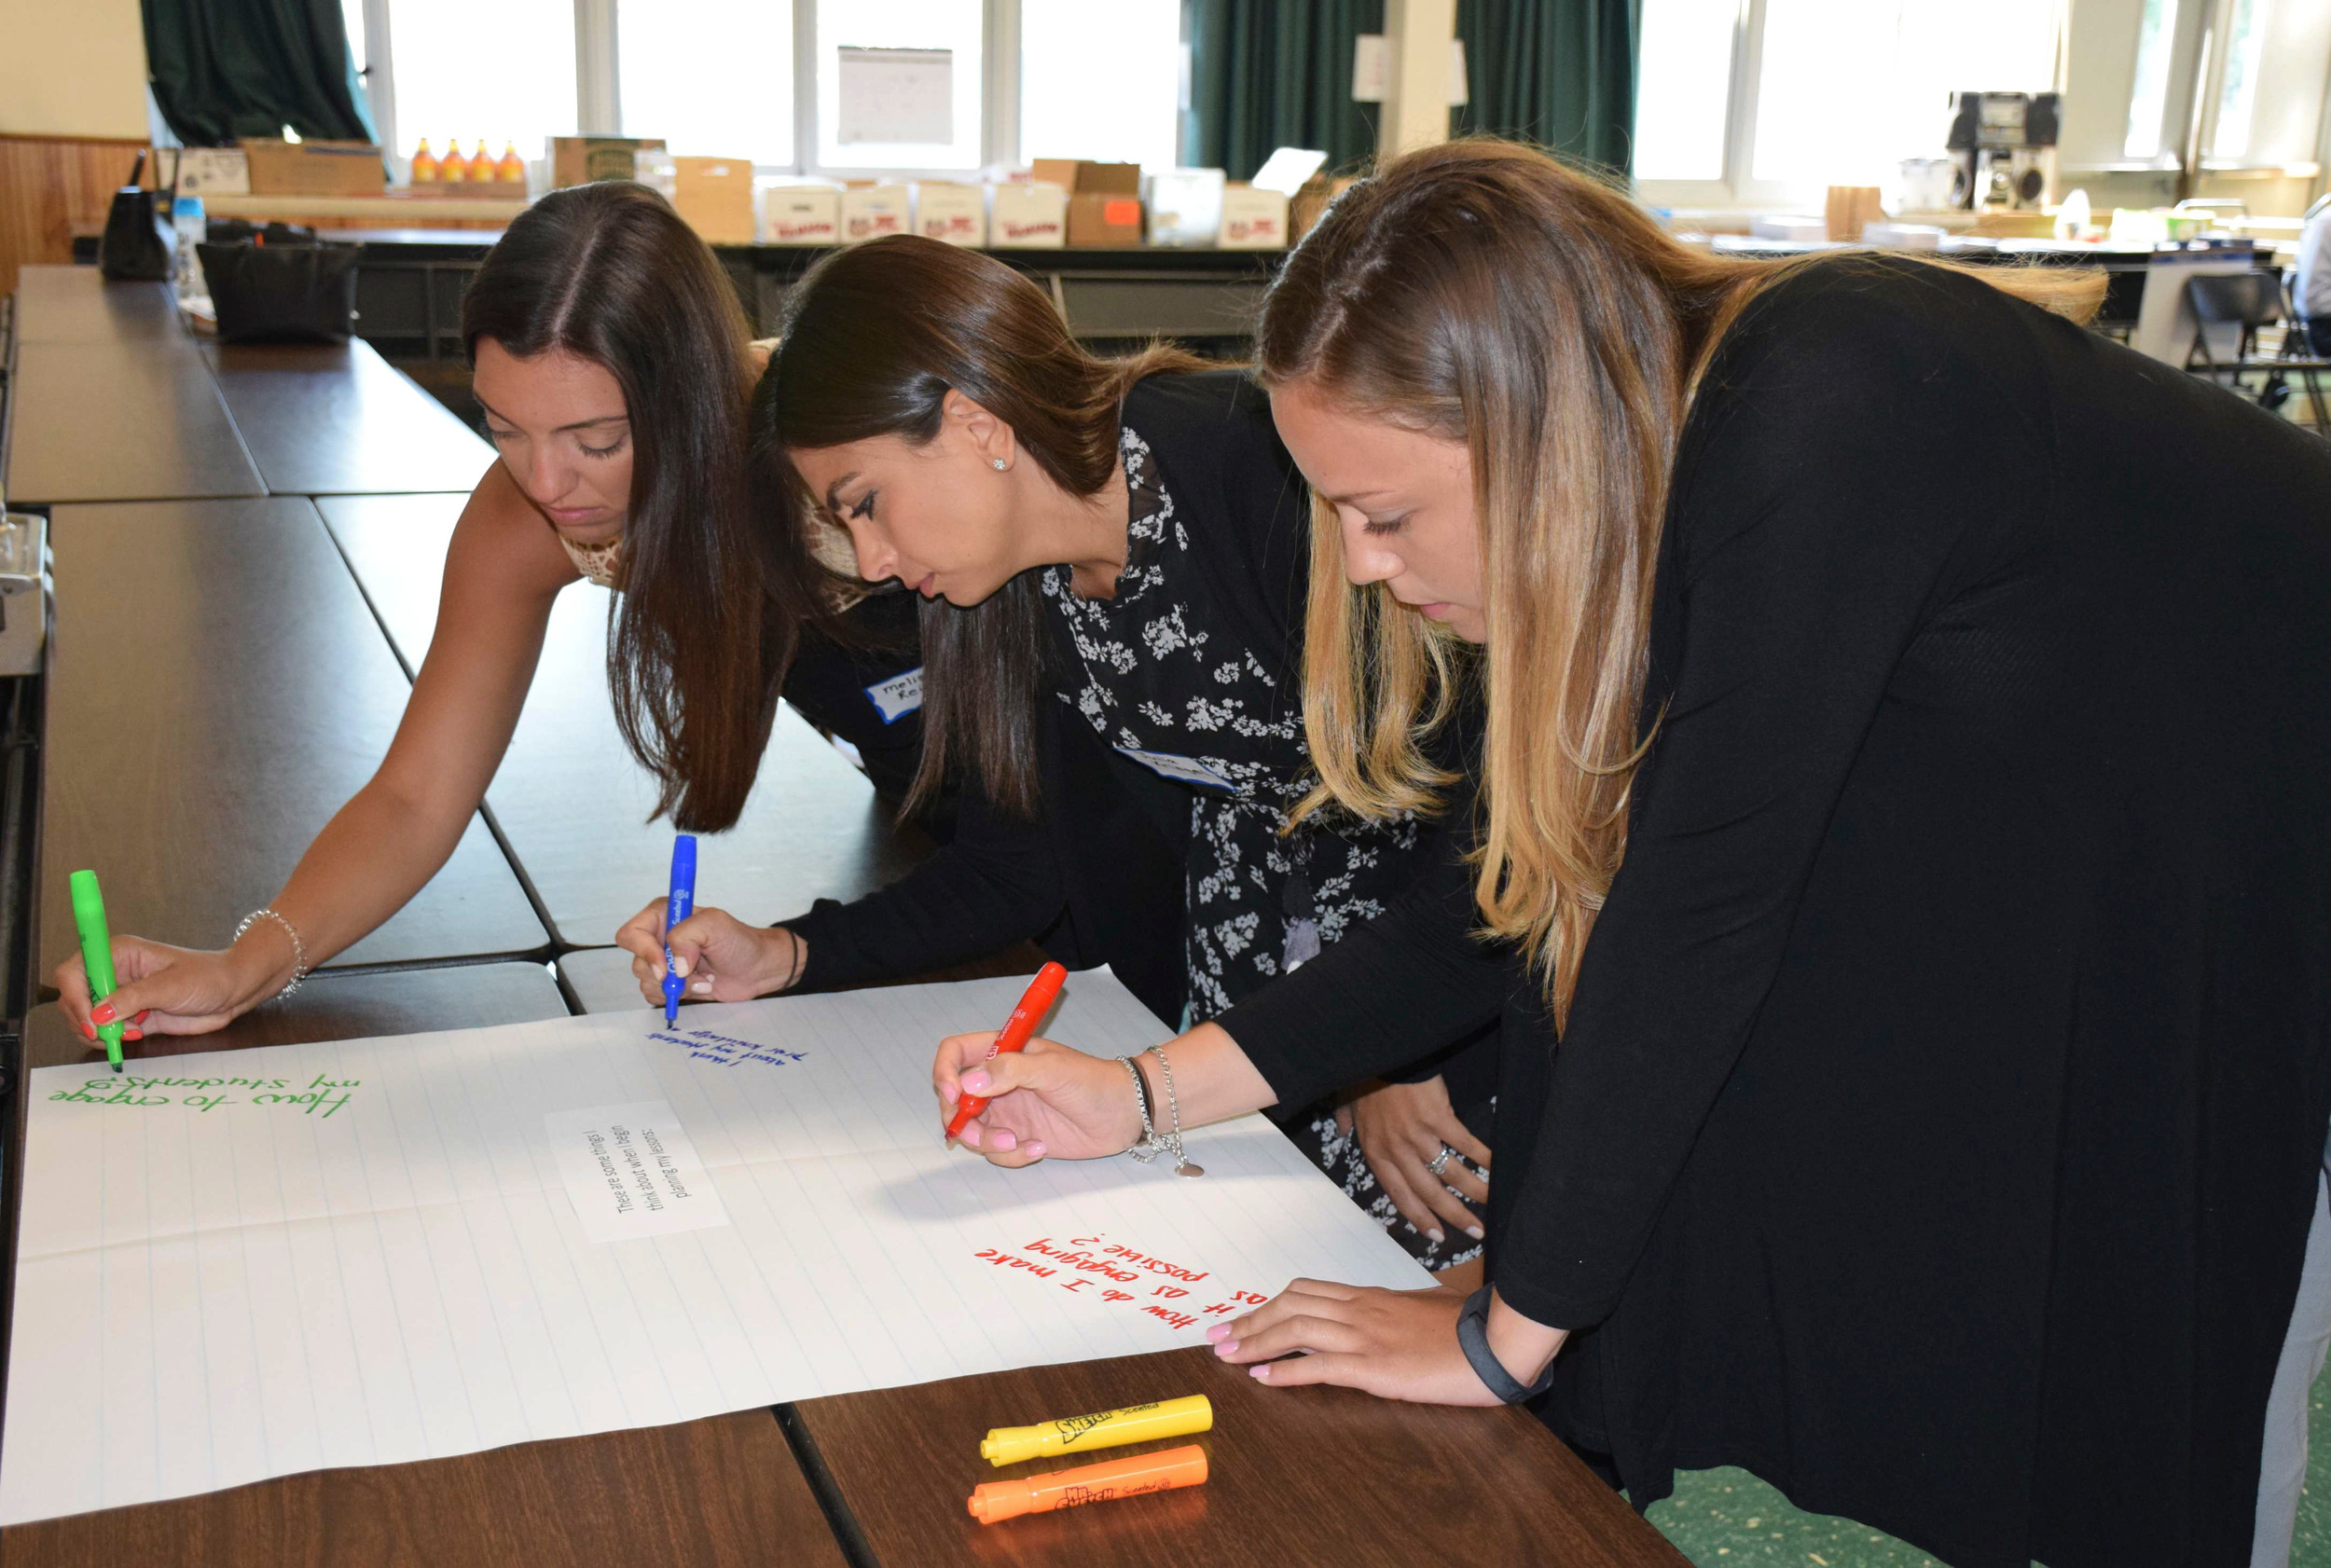 New teachers, from left, Melissa Reime, Julia Kriegel and Emma Hintz, shared their thoughts on how to create engaging lessons for students.